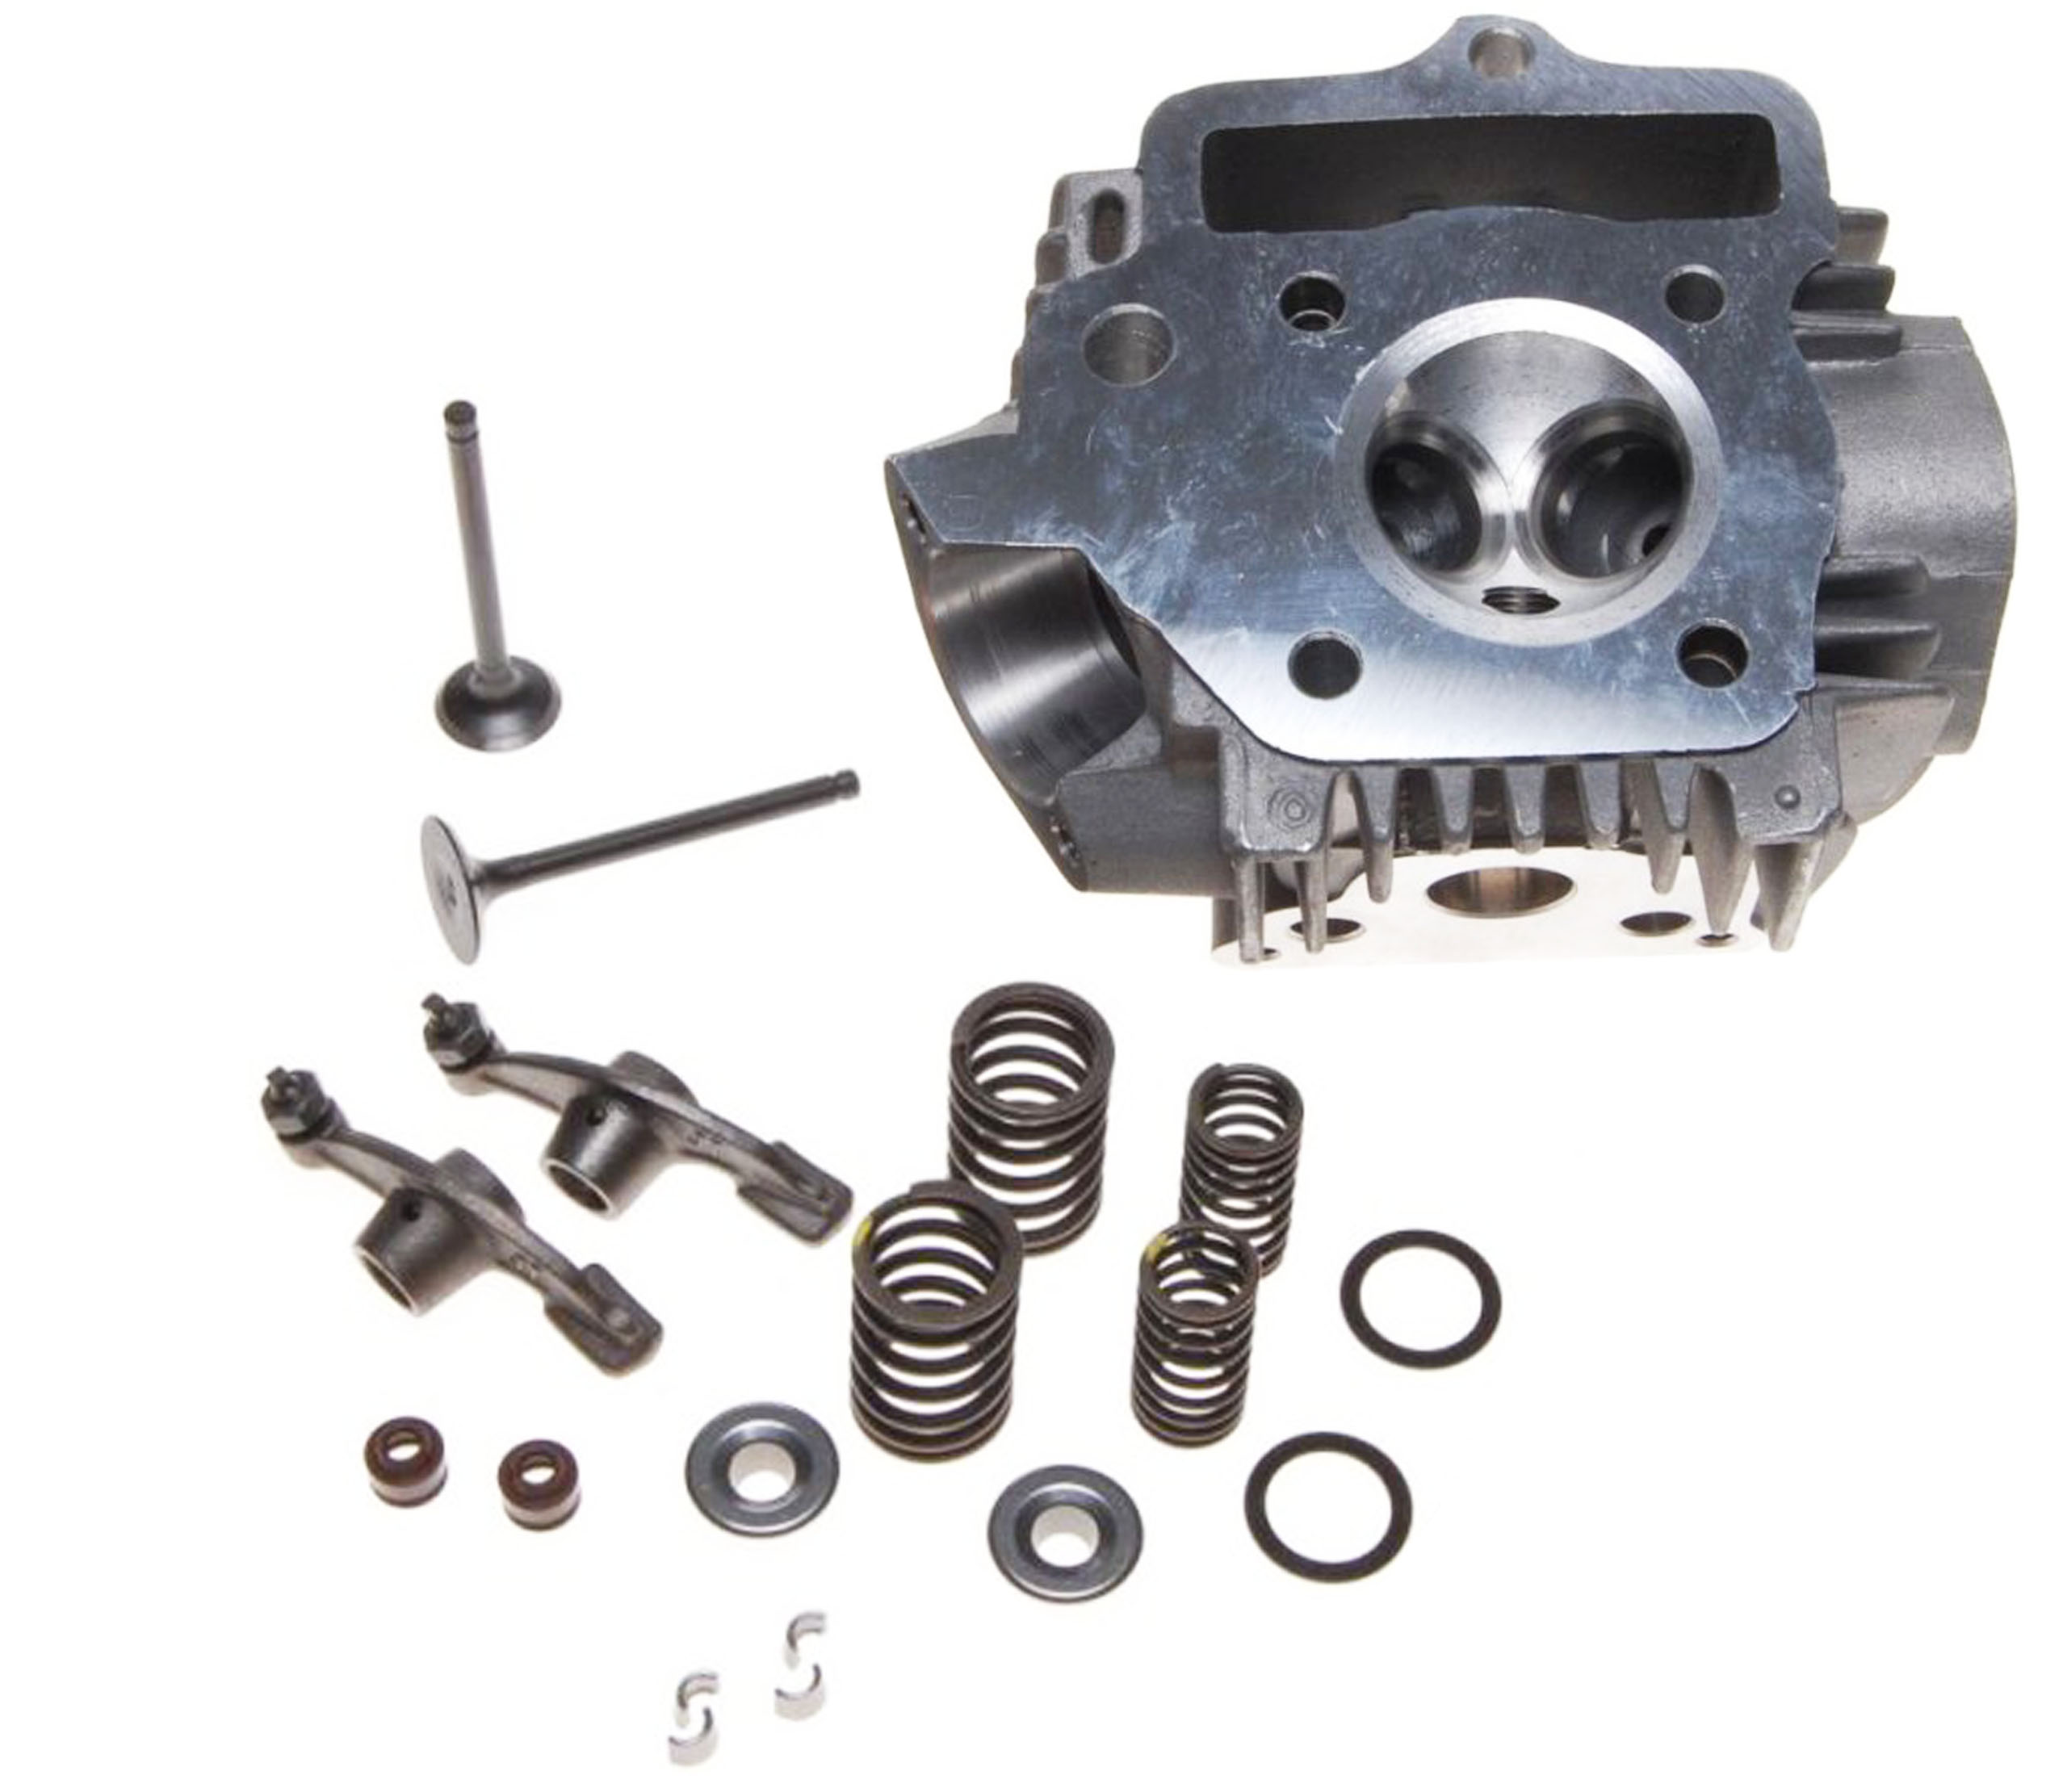 KING ROMET QUAD ATV KINROAD HEAD CILINDRAS 75